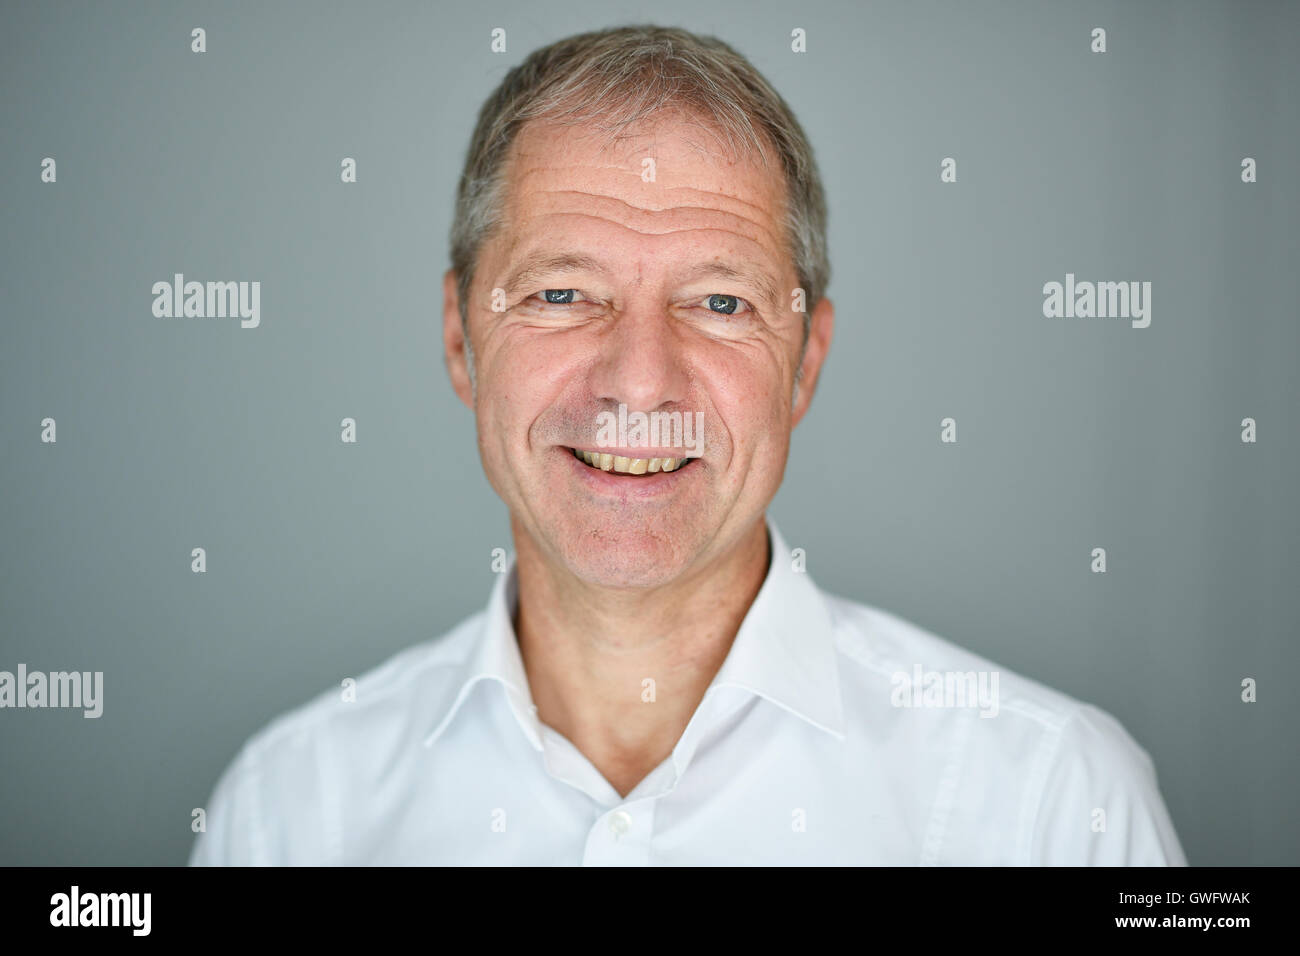 Heidelberg, Germany. 13th Sep, 2016. Virologist and cancer researcher Ralf Bartenschlager pictured in his office - Stock Image